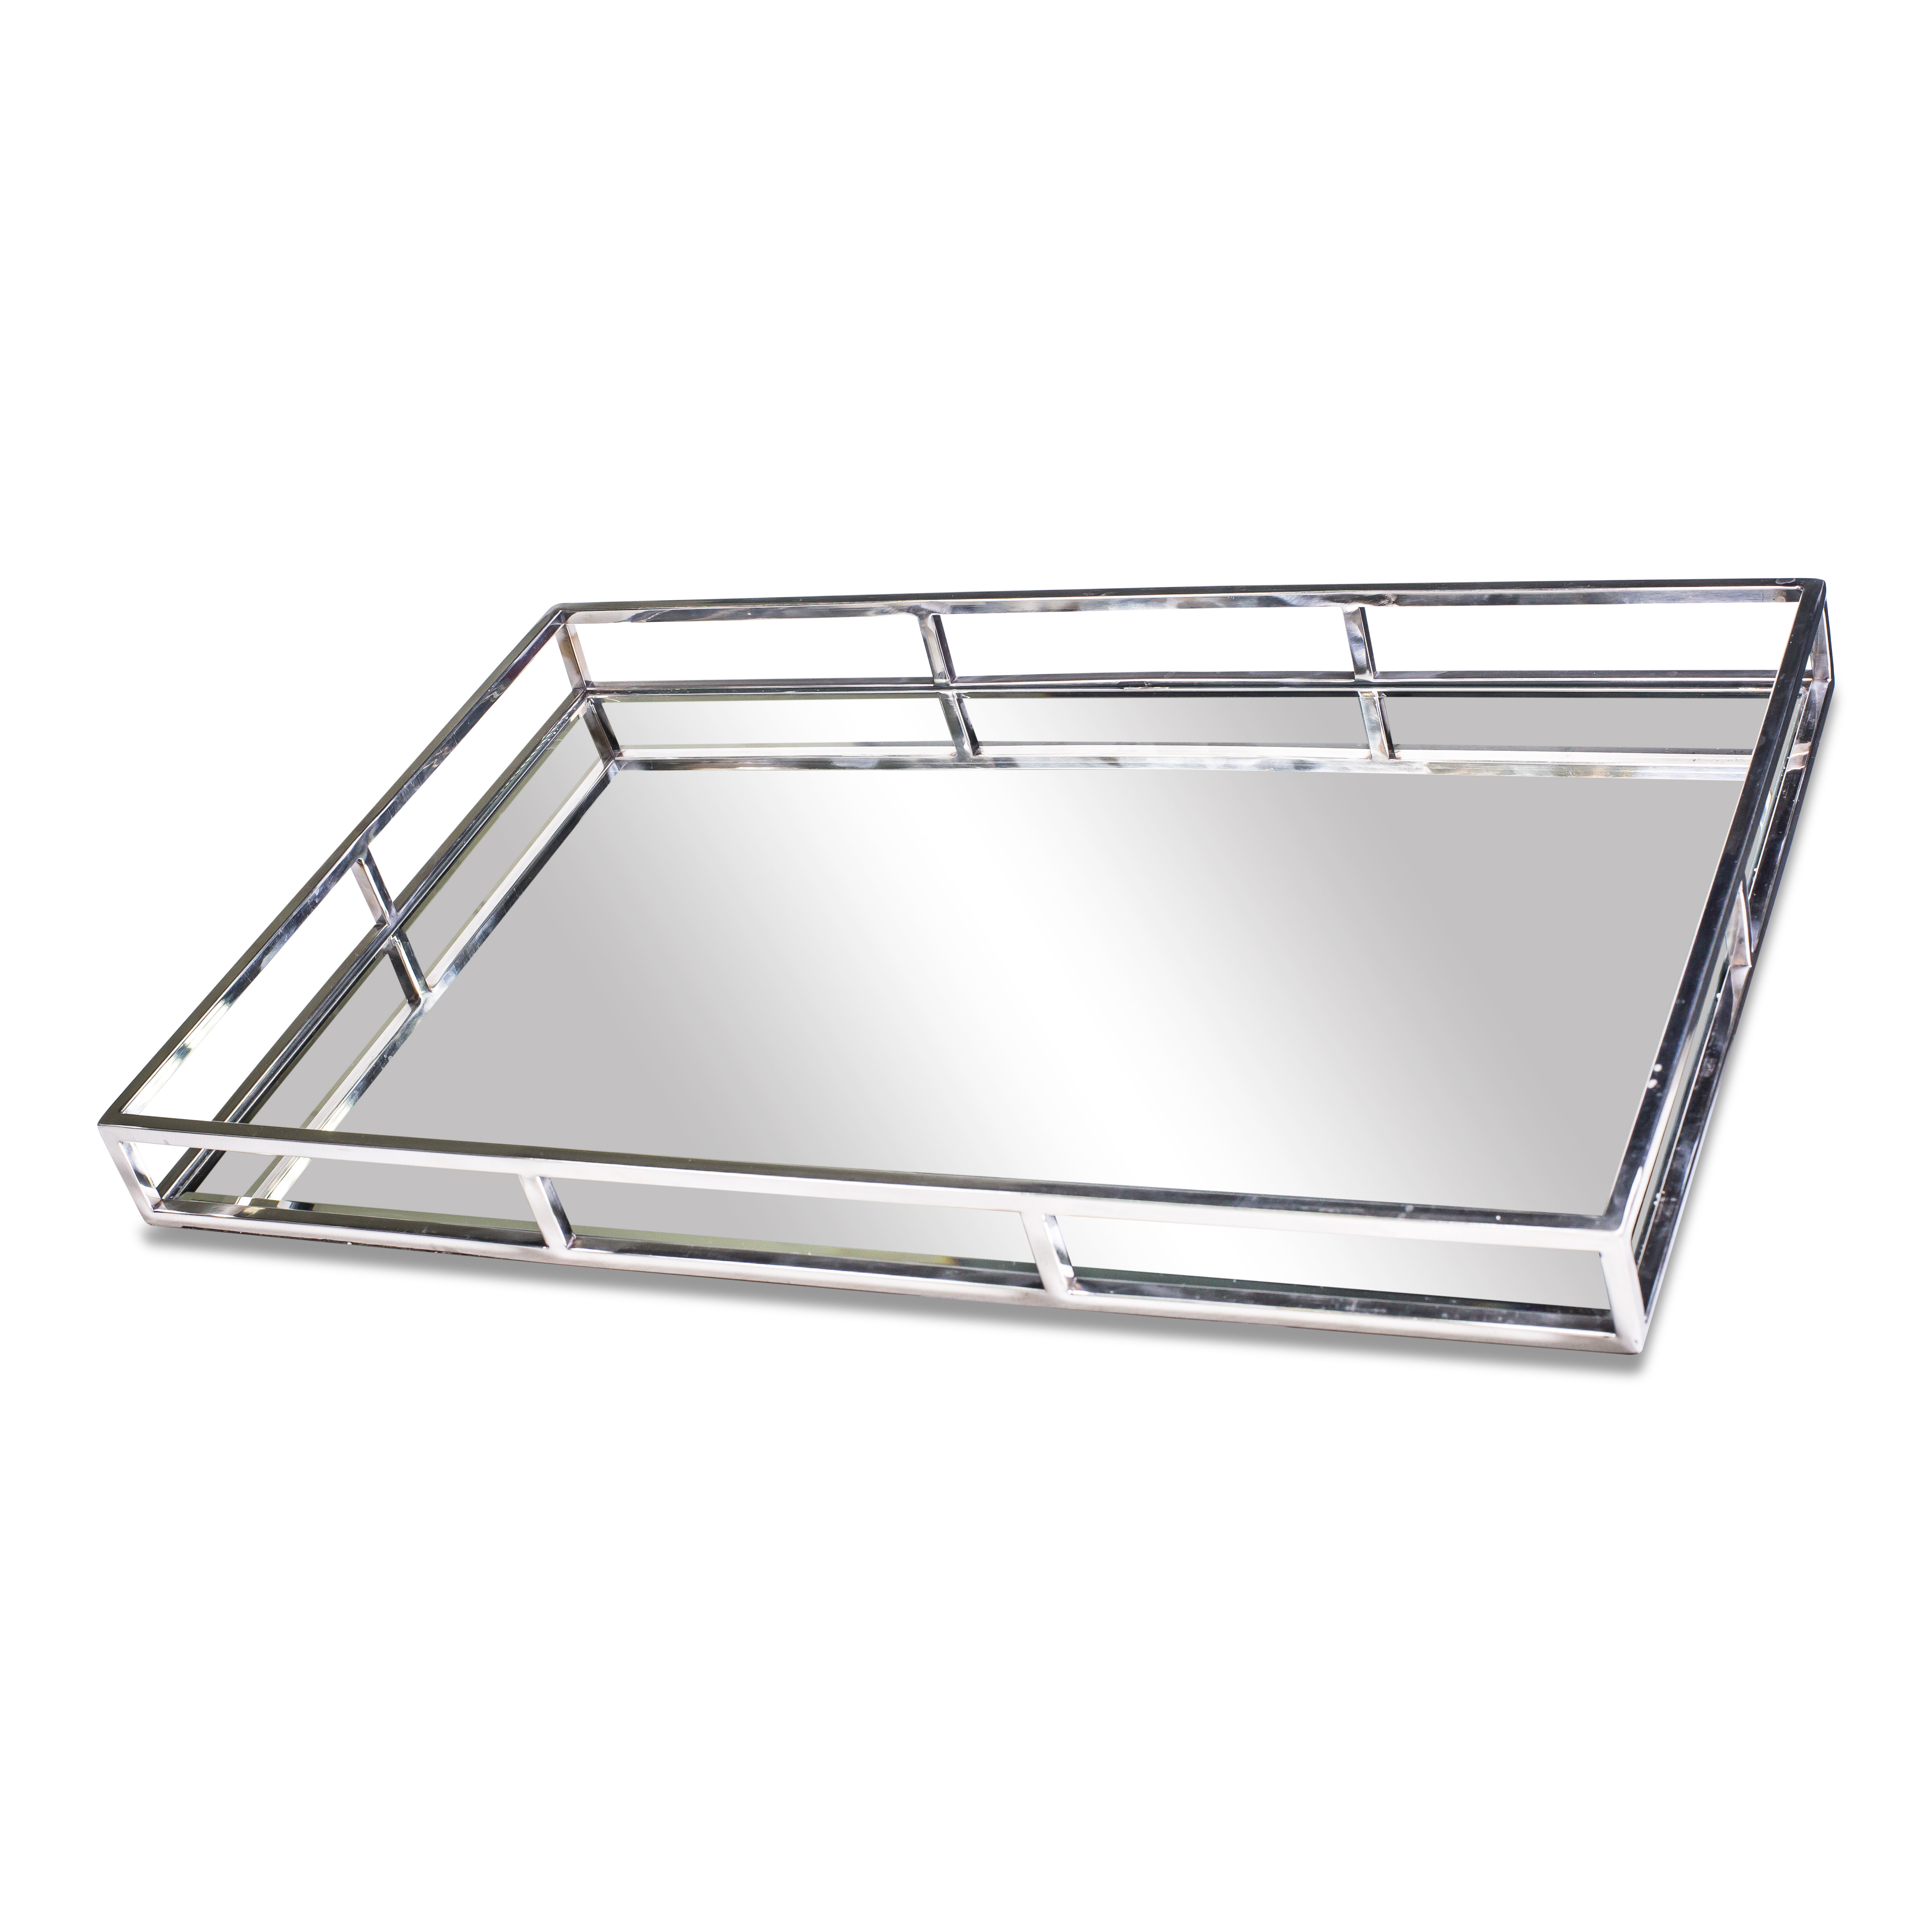 Silver Geometric Rectangles Mirrored Serving Tray